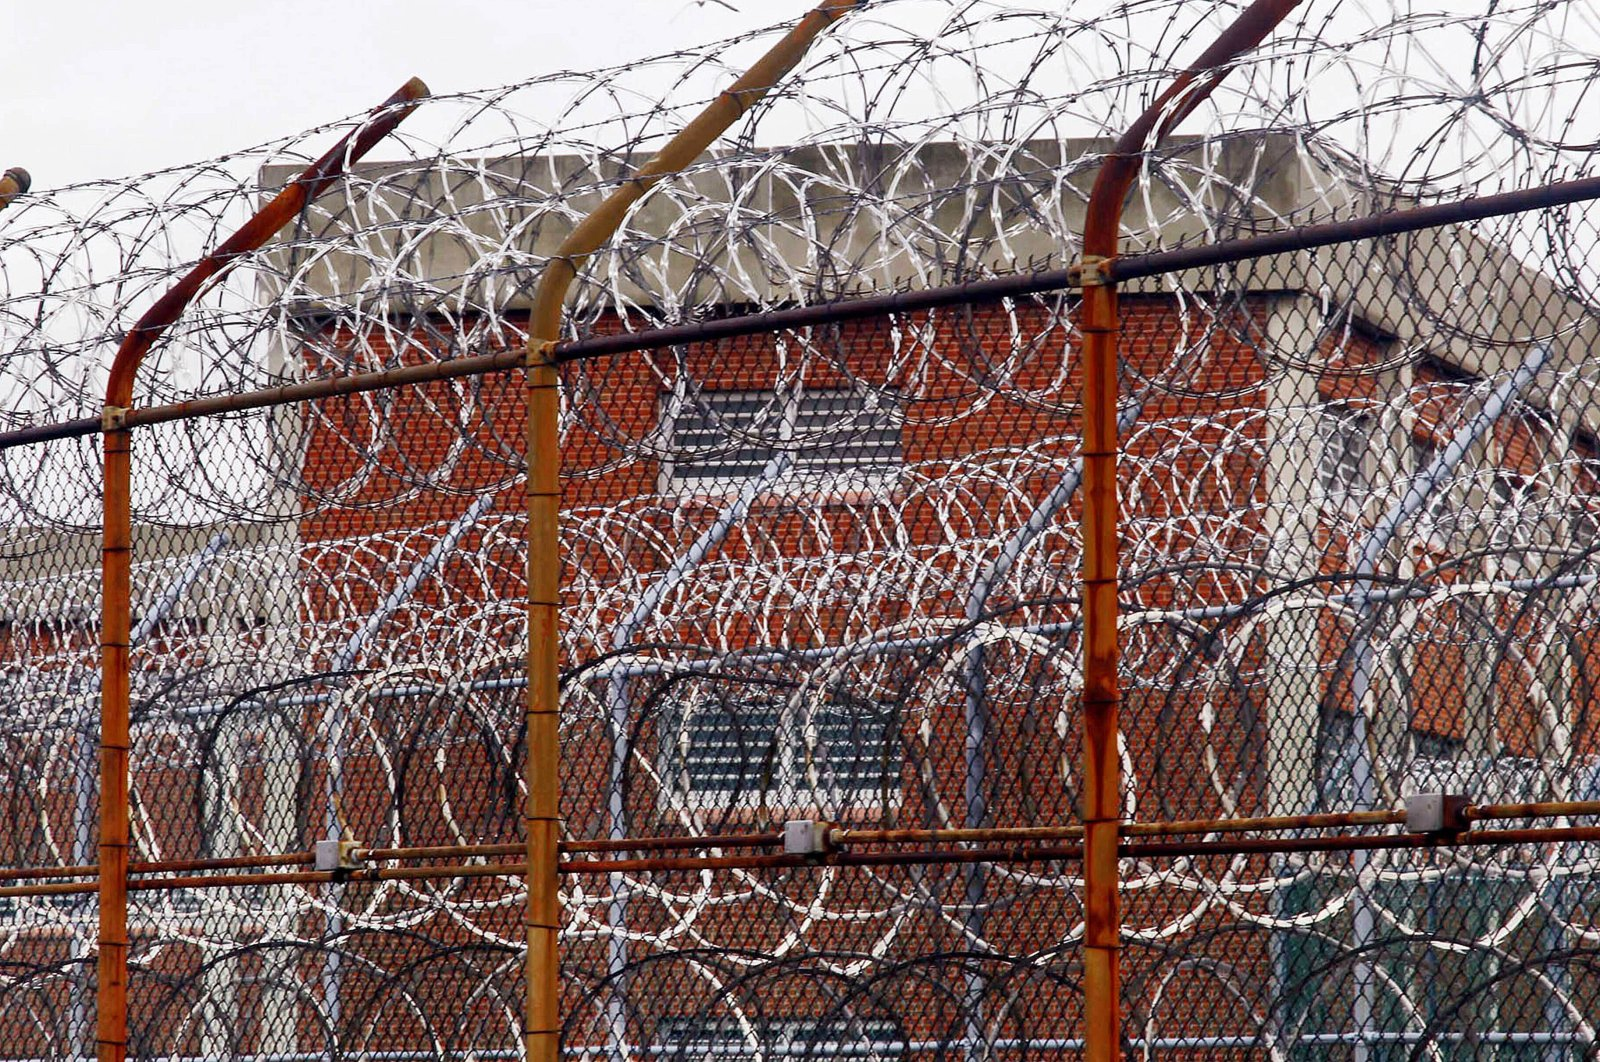 In this March 16, 2011, file photo, a security fence surrounds inmate housing at the Rikers Island correctional facility in New York. As of May 6, 2020, more than 20,000 inmates have been infected by the coronavirus and 295 have died nationwide, according to an unofficial tally kept by UCLA Law's COVID-19 Behind Bars Data Project. (AP File Photo)